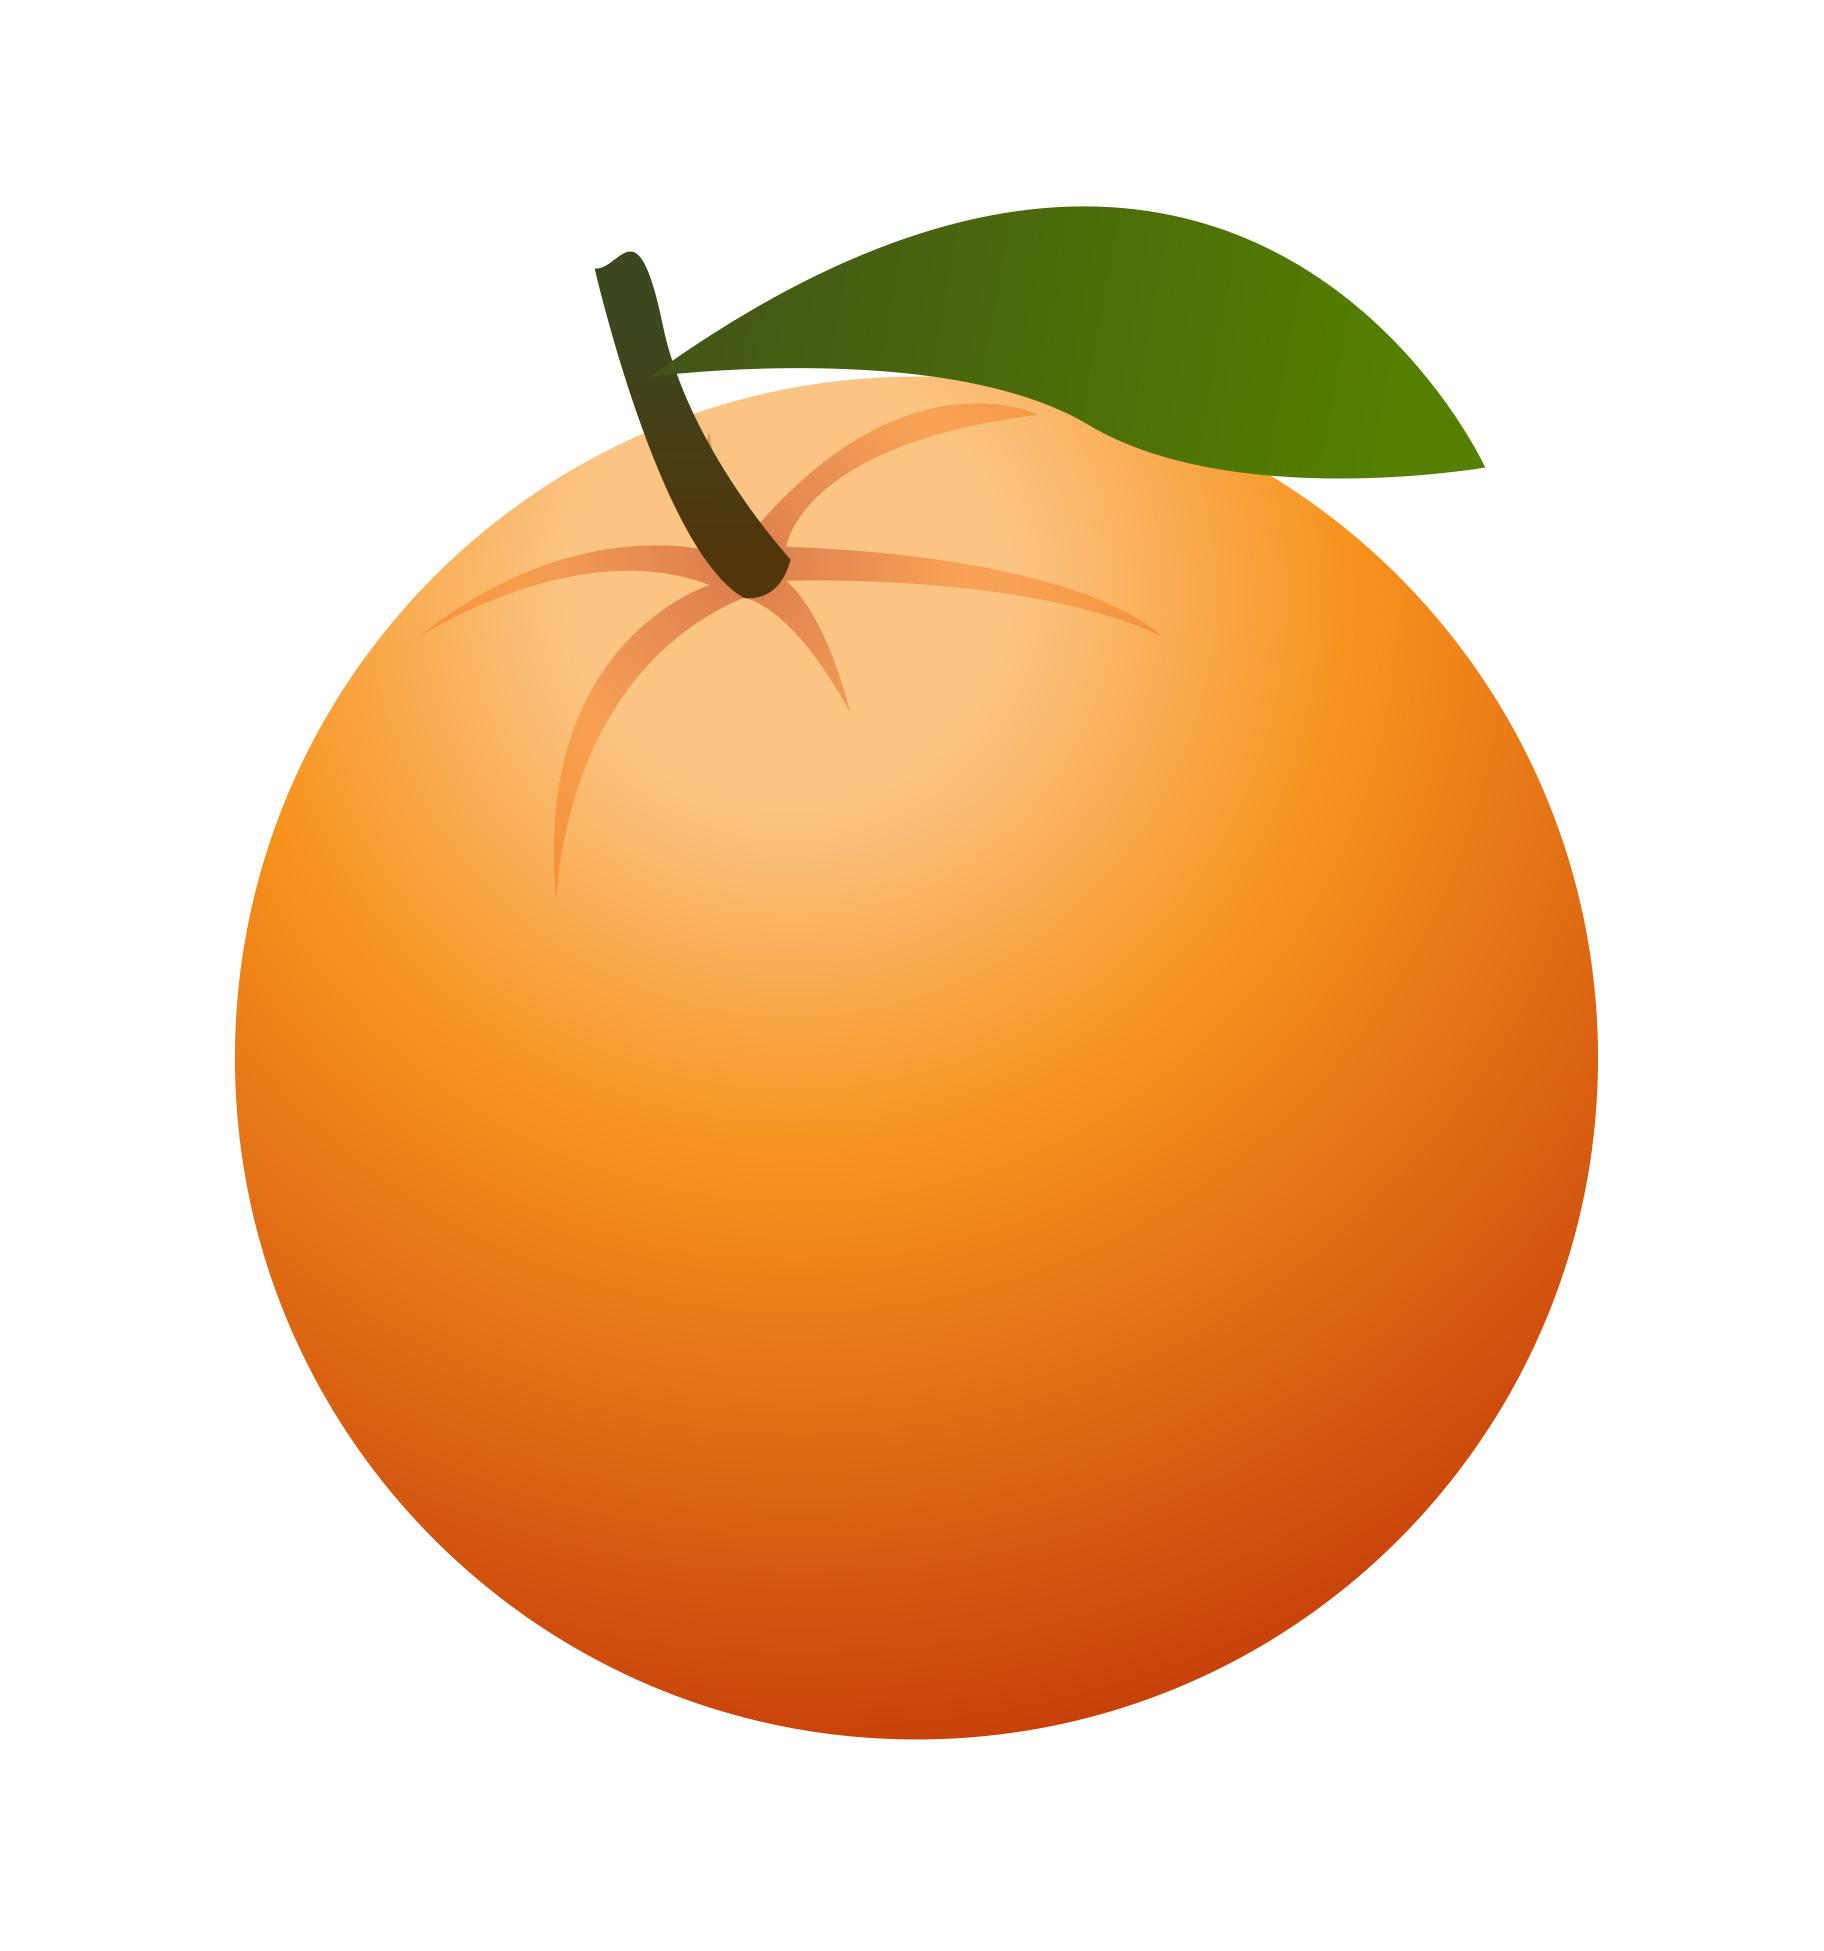 Hd art orange clipart fruit drawing jpg